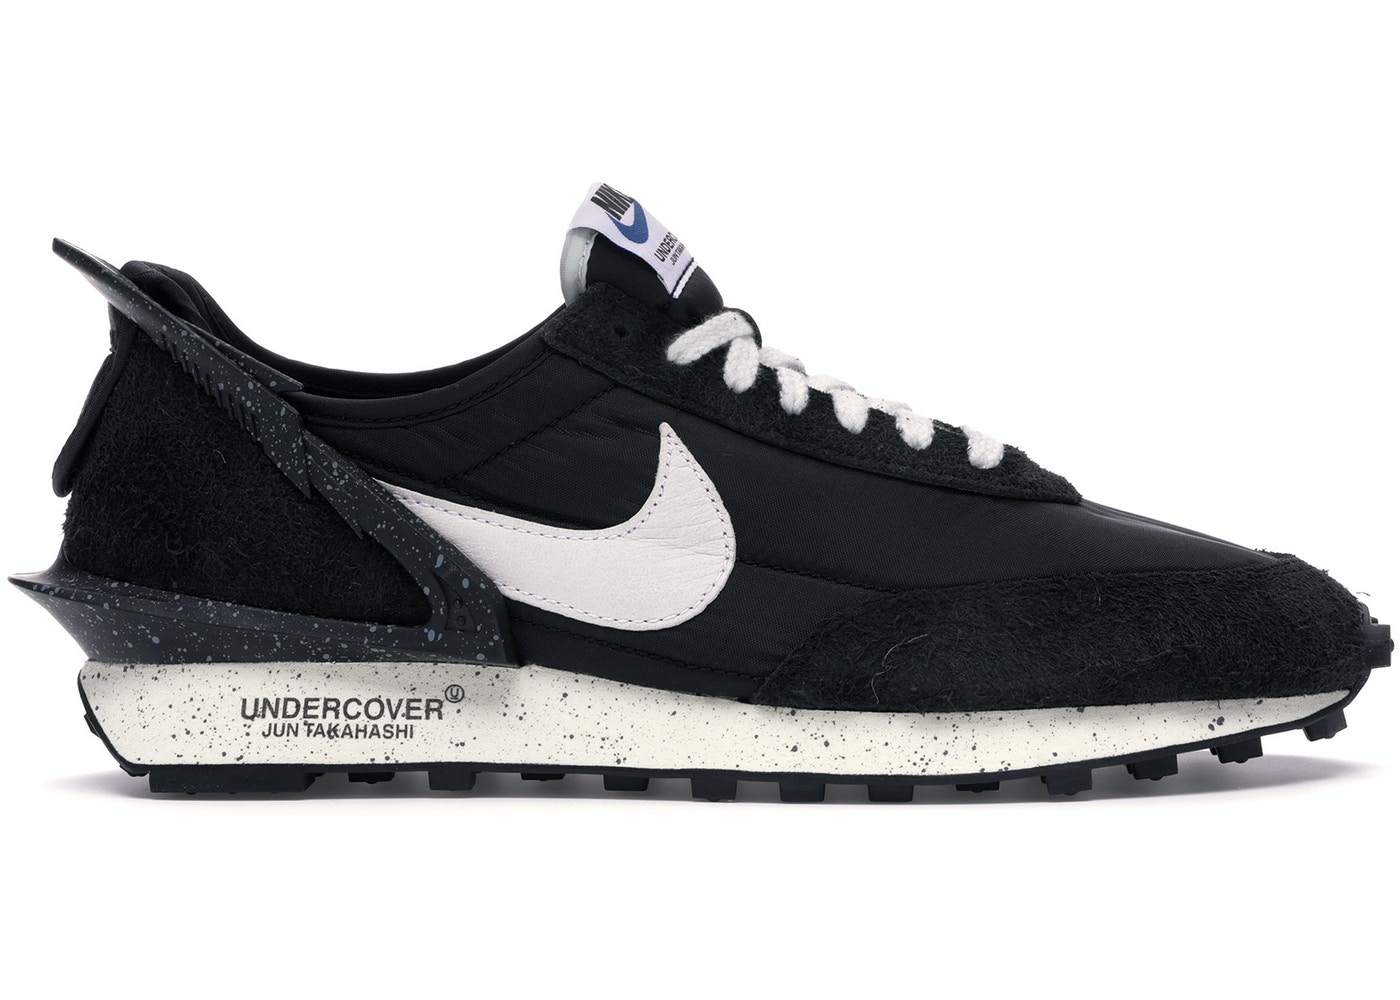 60910bb82a87 Buy Nike Other Shoes & Deadstock Sneakers